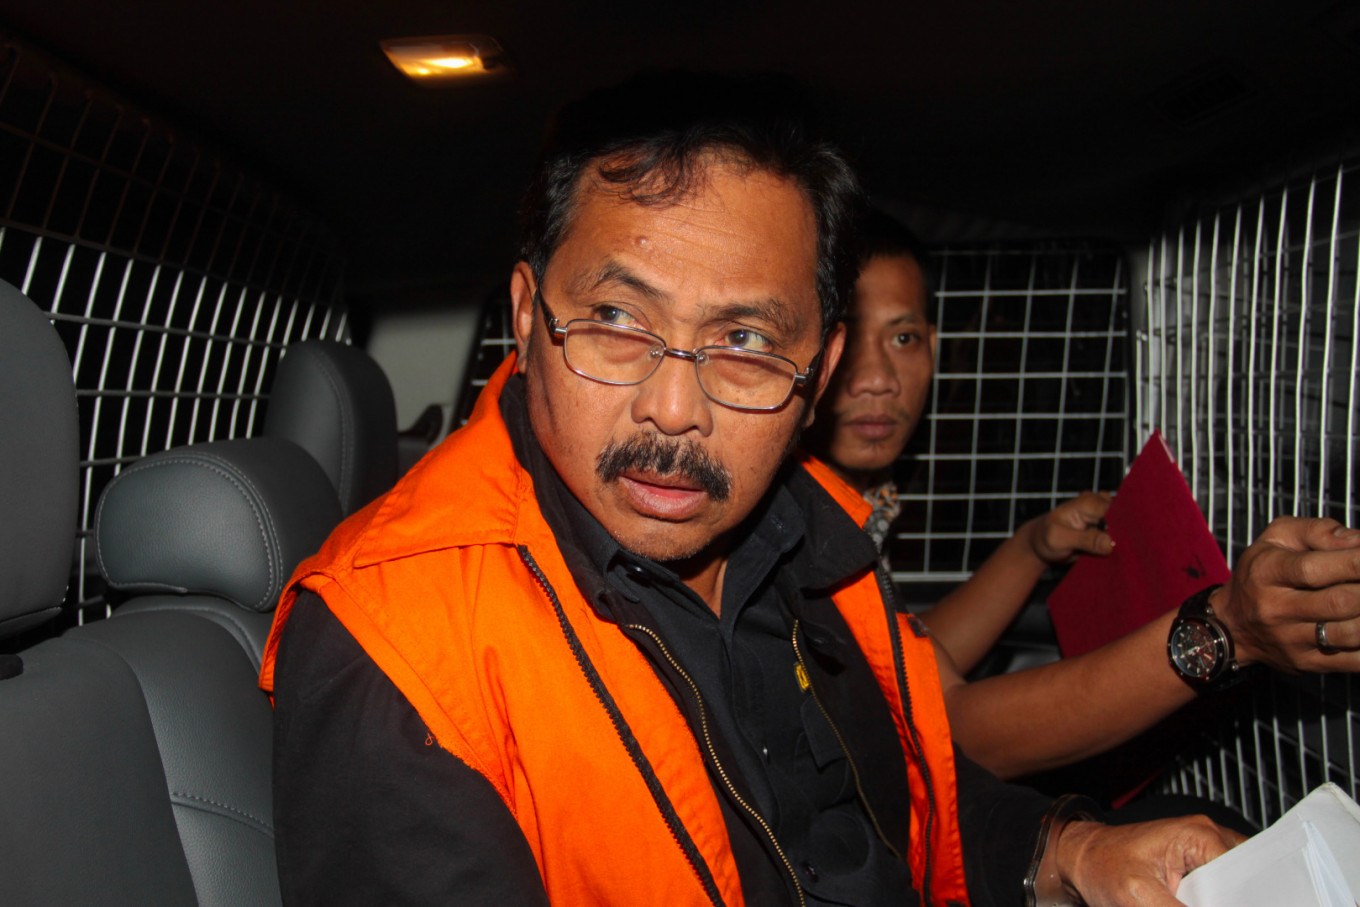 Riau Islands governor Nurdin Basirun sentenced to four years in prison for bribery